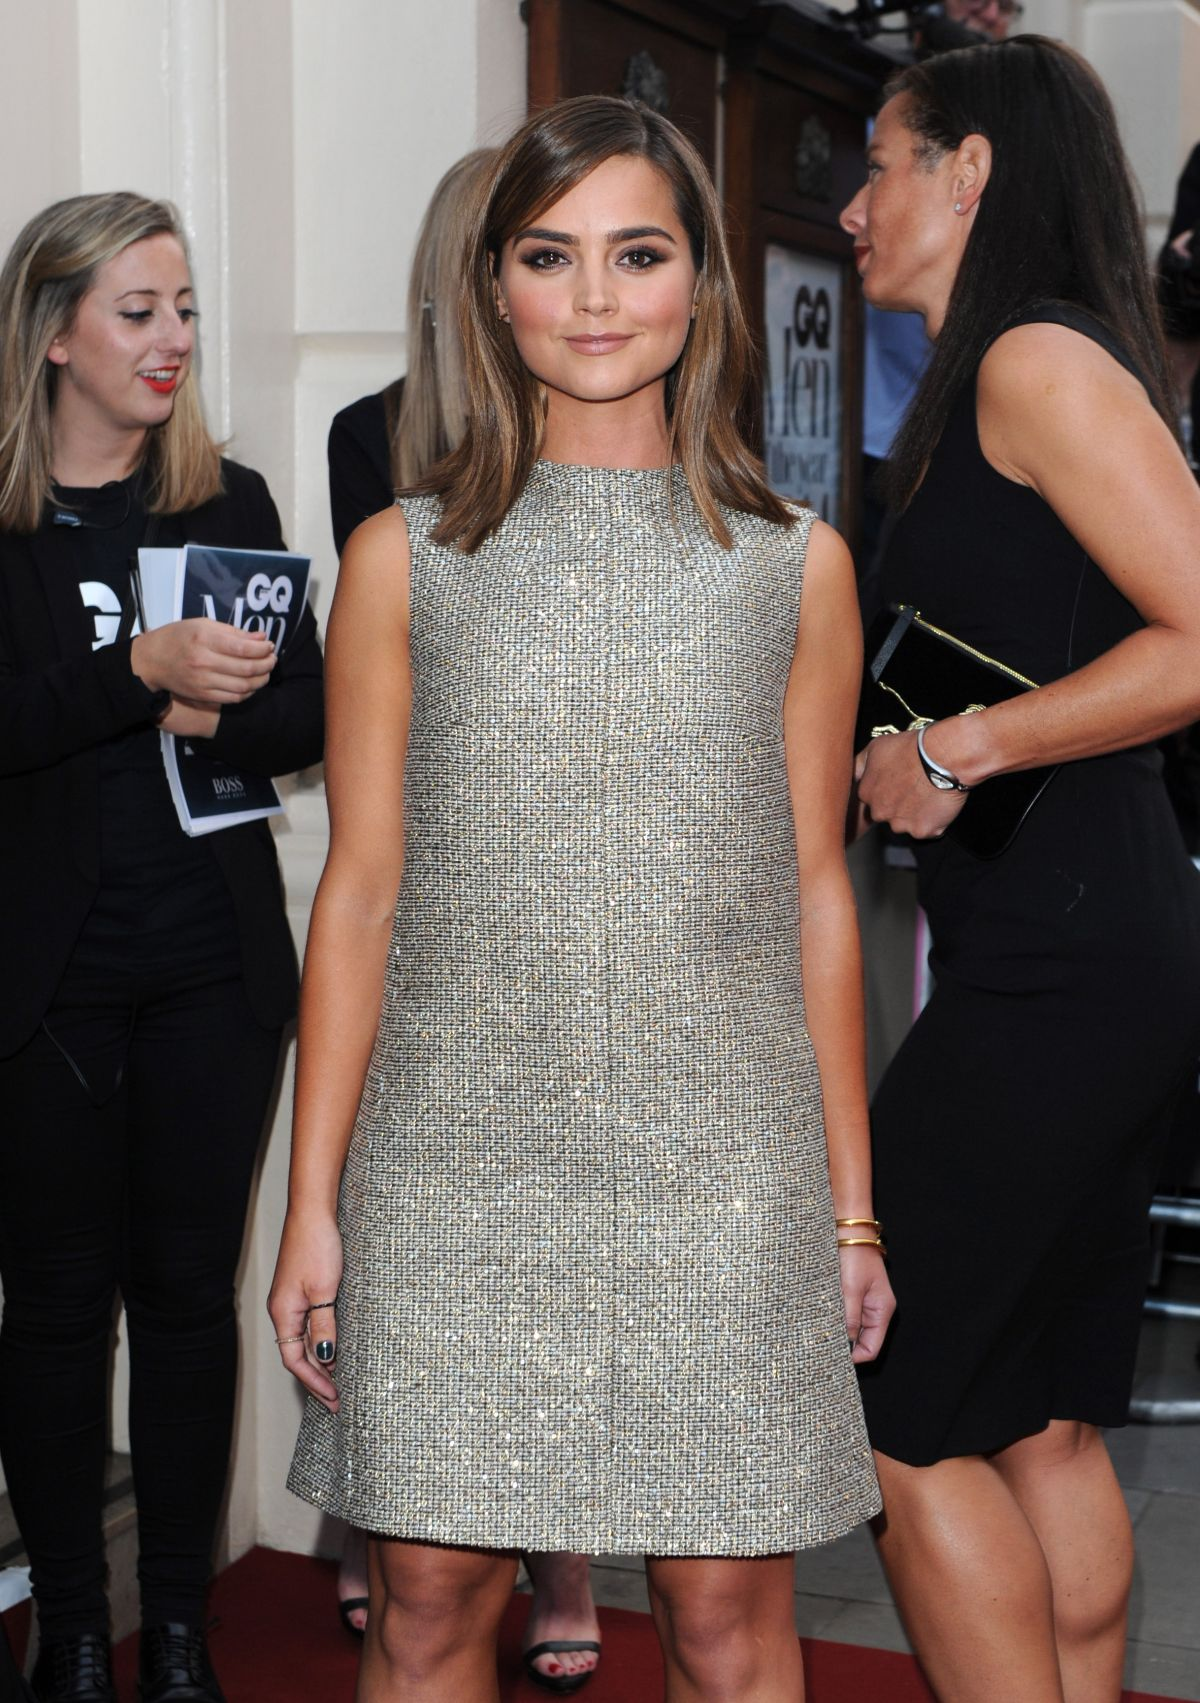 JENNA COLEMAN at 2014 GQ Men of the Year Awards in London